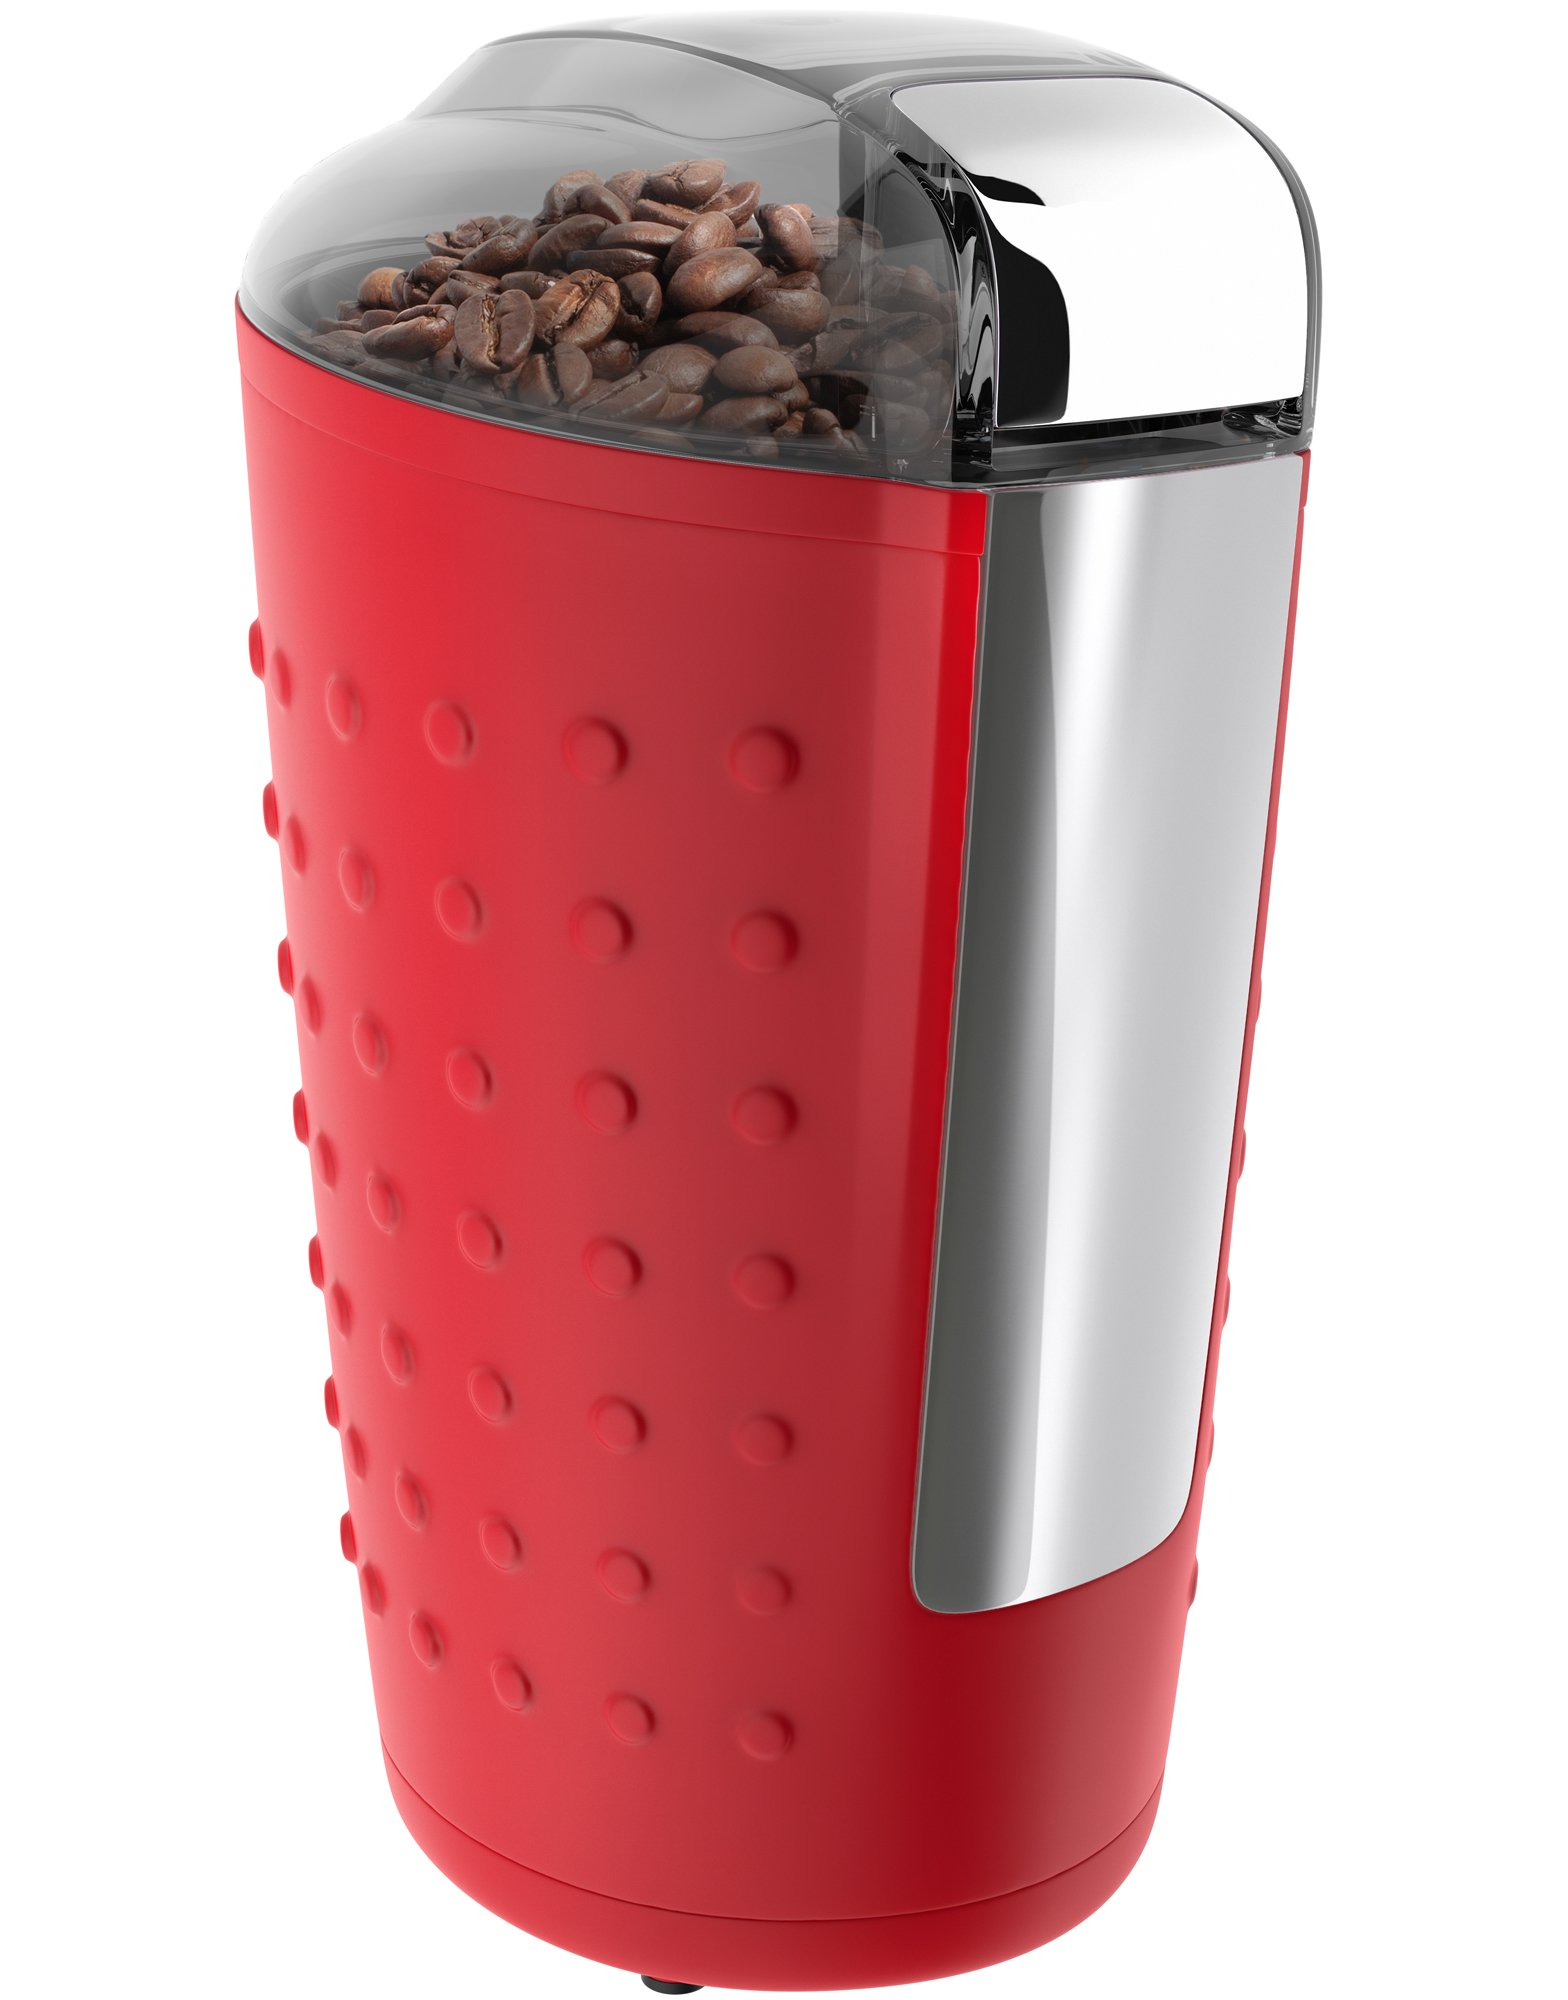 Vremi Blade Coffee Grinder Electric - For Coffee Bean or Spices with Stainless Steel Blade - Makes 12 to 14 Cups of Pour Over Espresso or Drip Coffee - Instant Travel Grinder with Brush Cleaner - Red